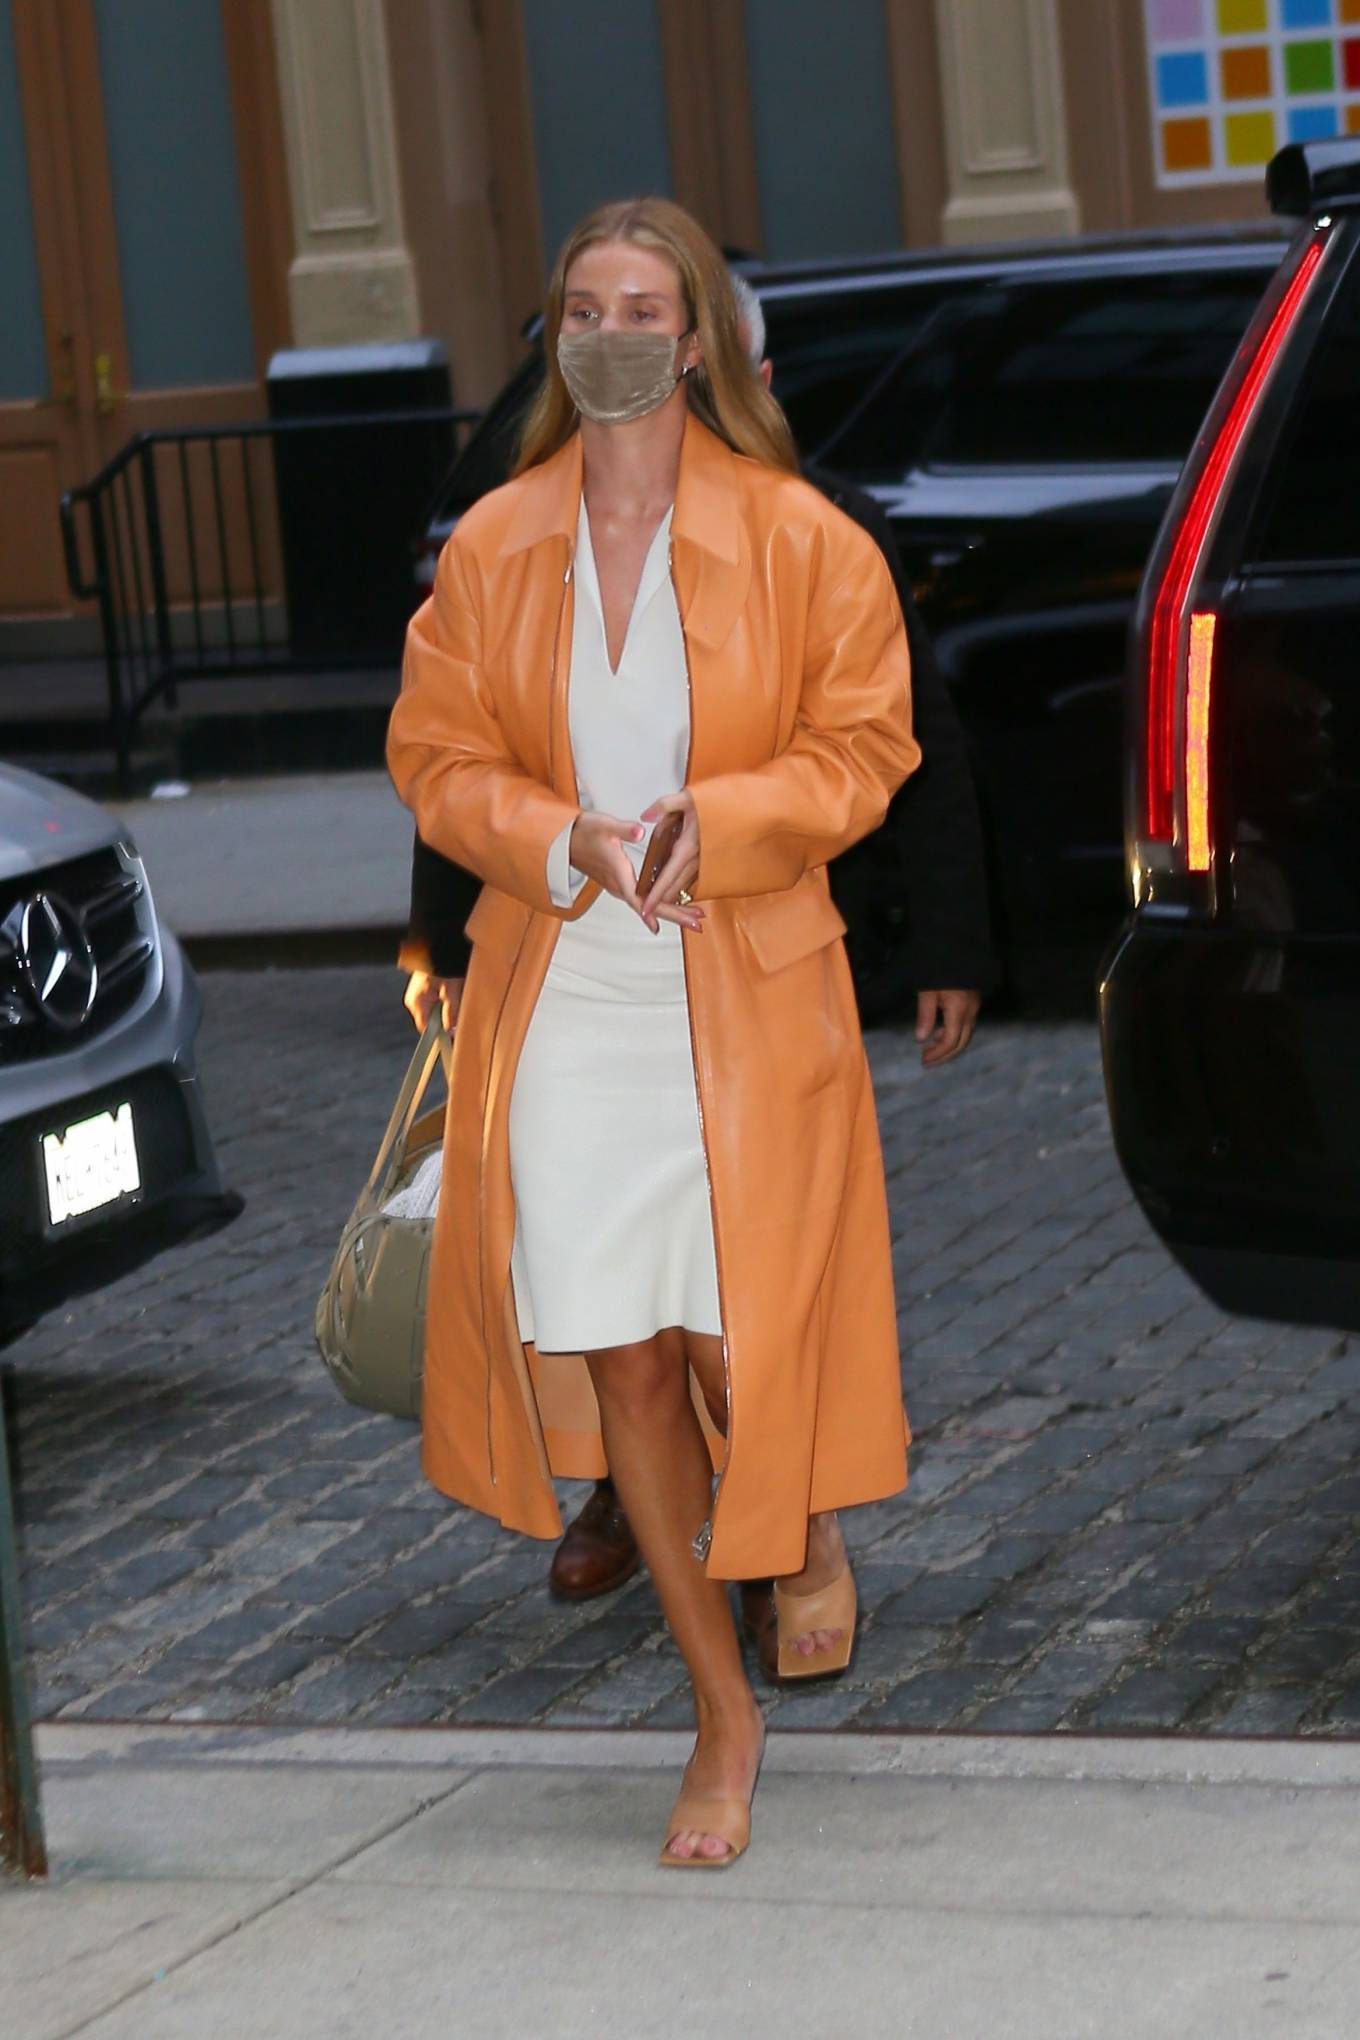 Rosie Huntington-Whiteley 2021 : Rosie Huntington-Whiteley – With a coral-hued trench coat in New York-02